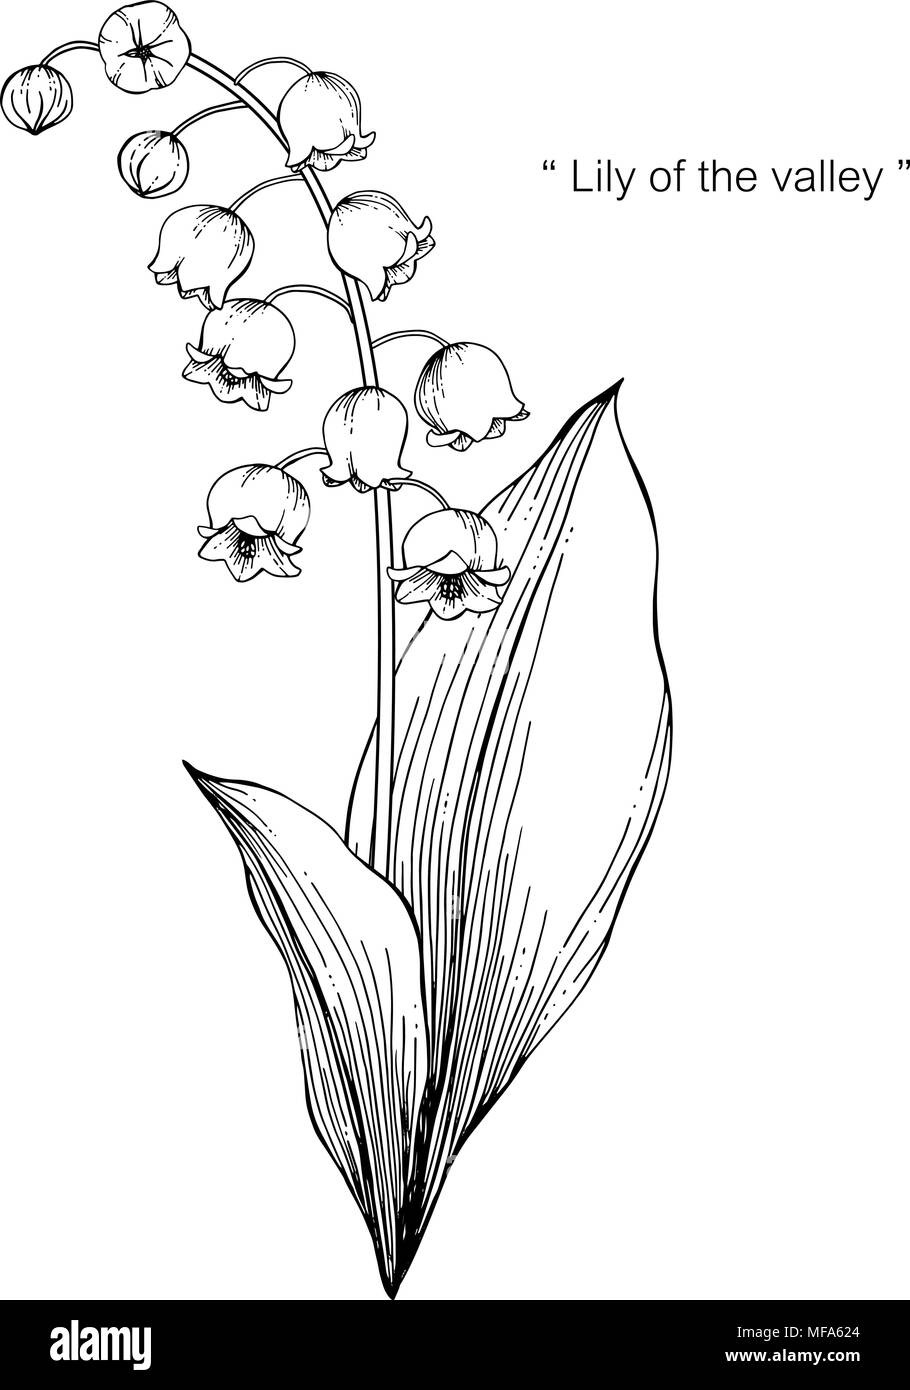 Lily Of The Valley Flower Drawing Illustration Black And White With